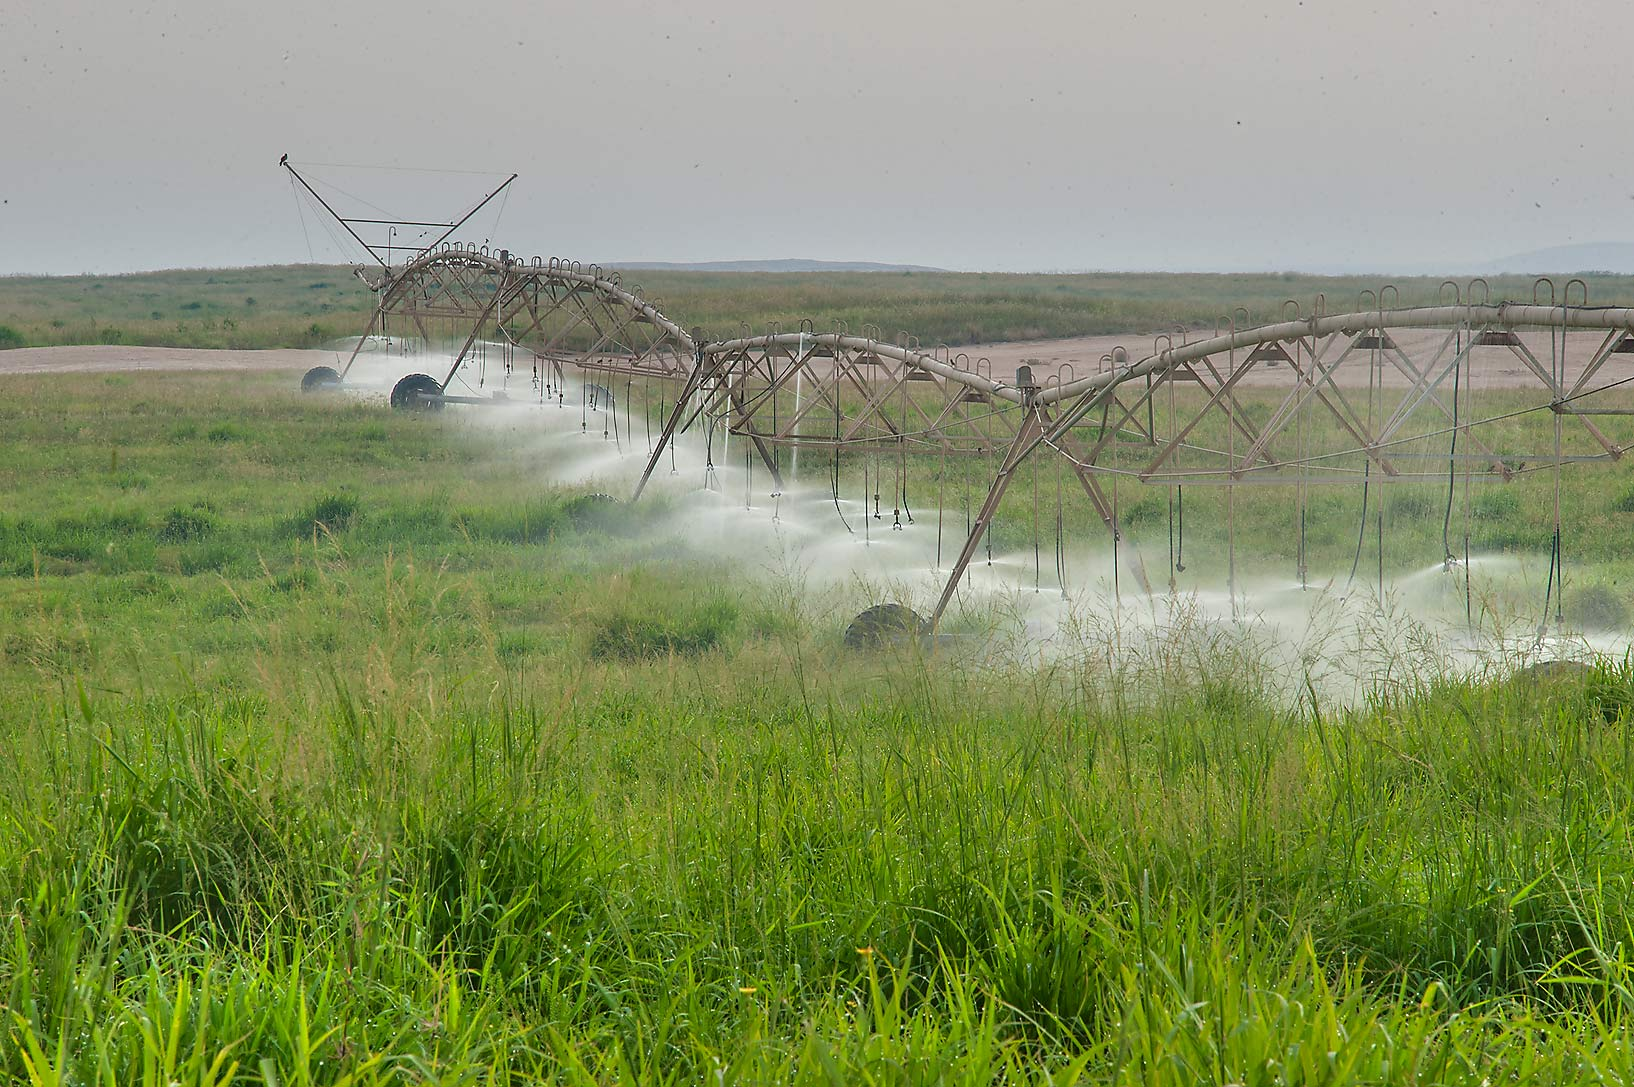 Watering a field on Green Circles (center-pivot...in Irkhaya (Irkaya) Farms. Qatar